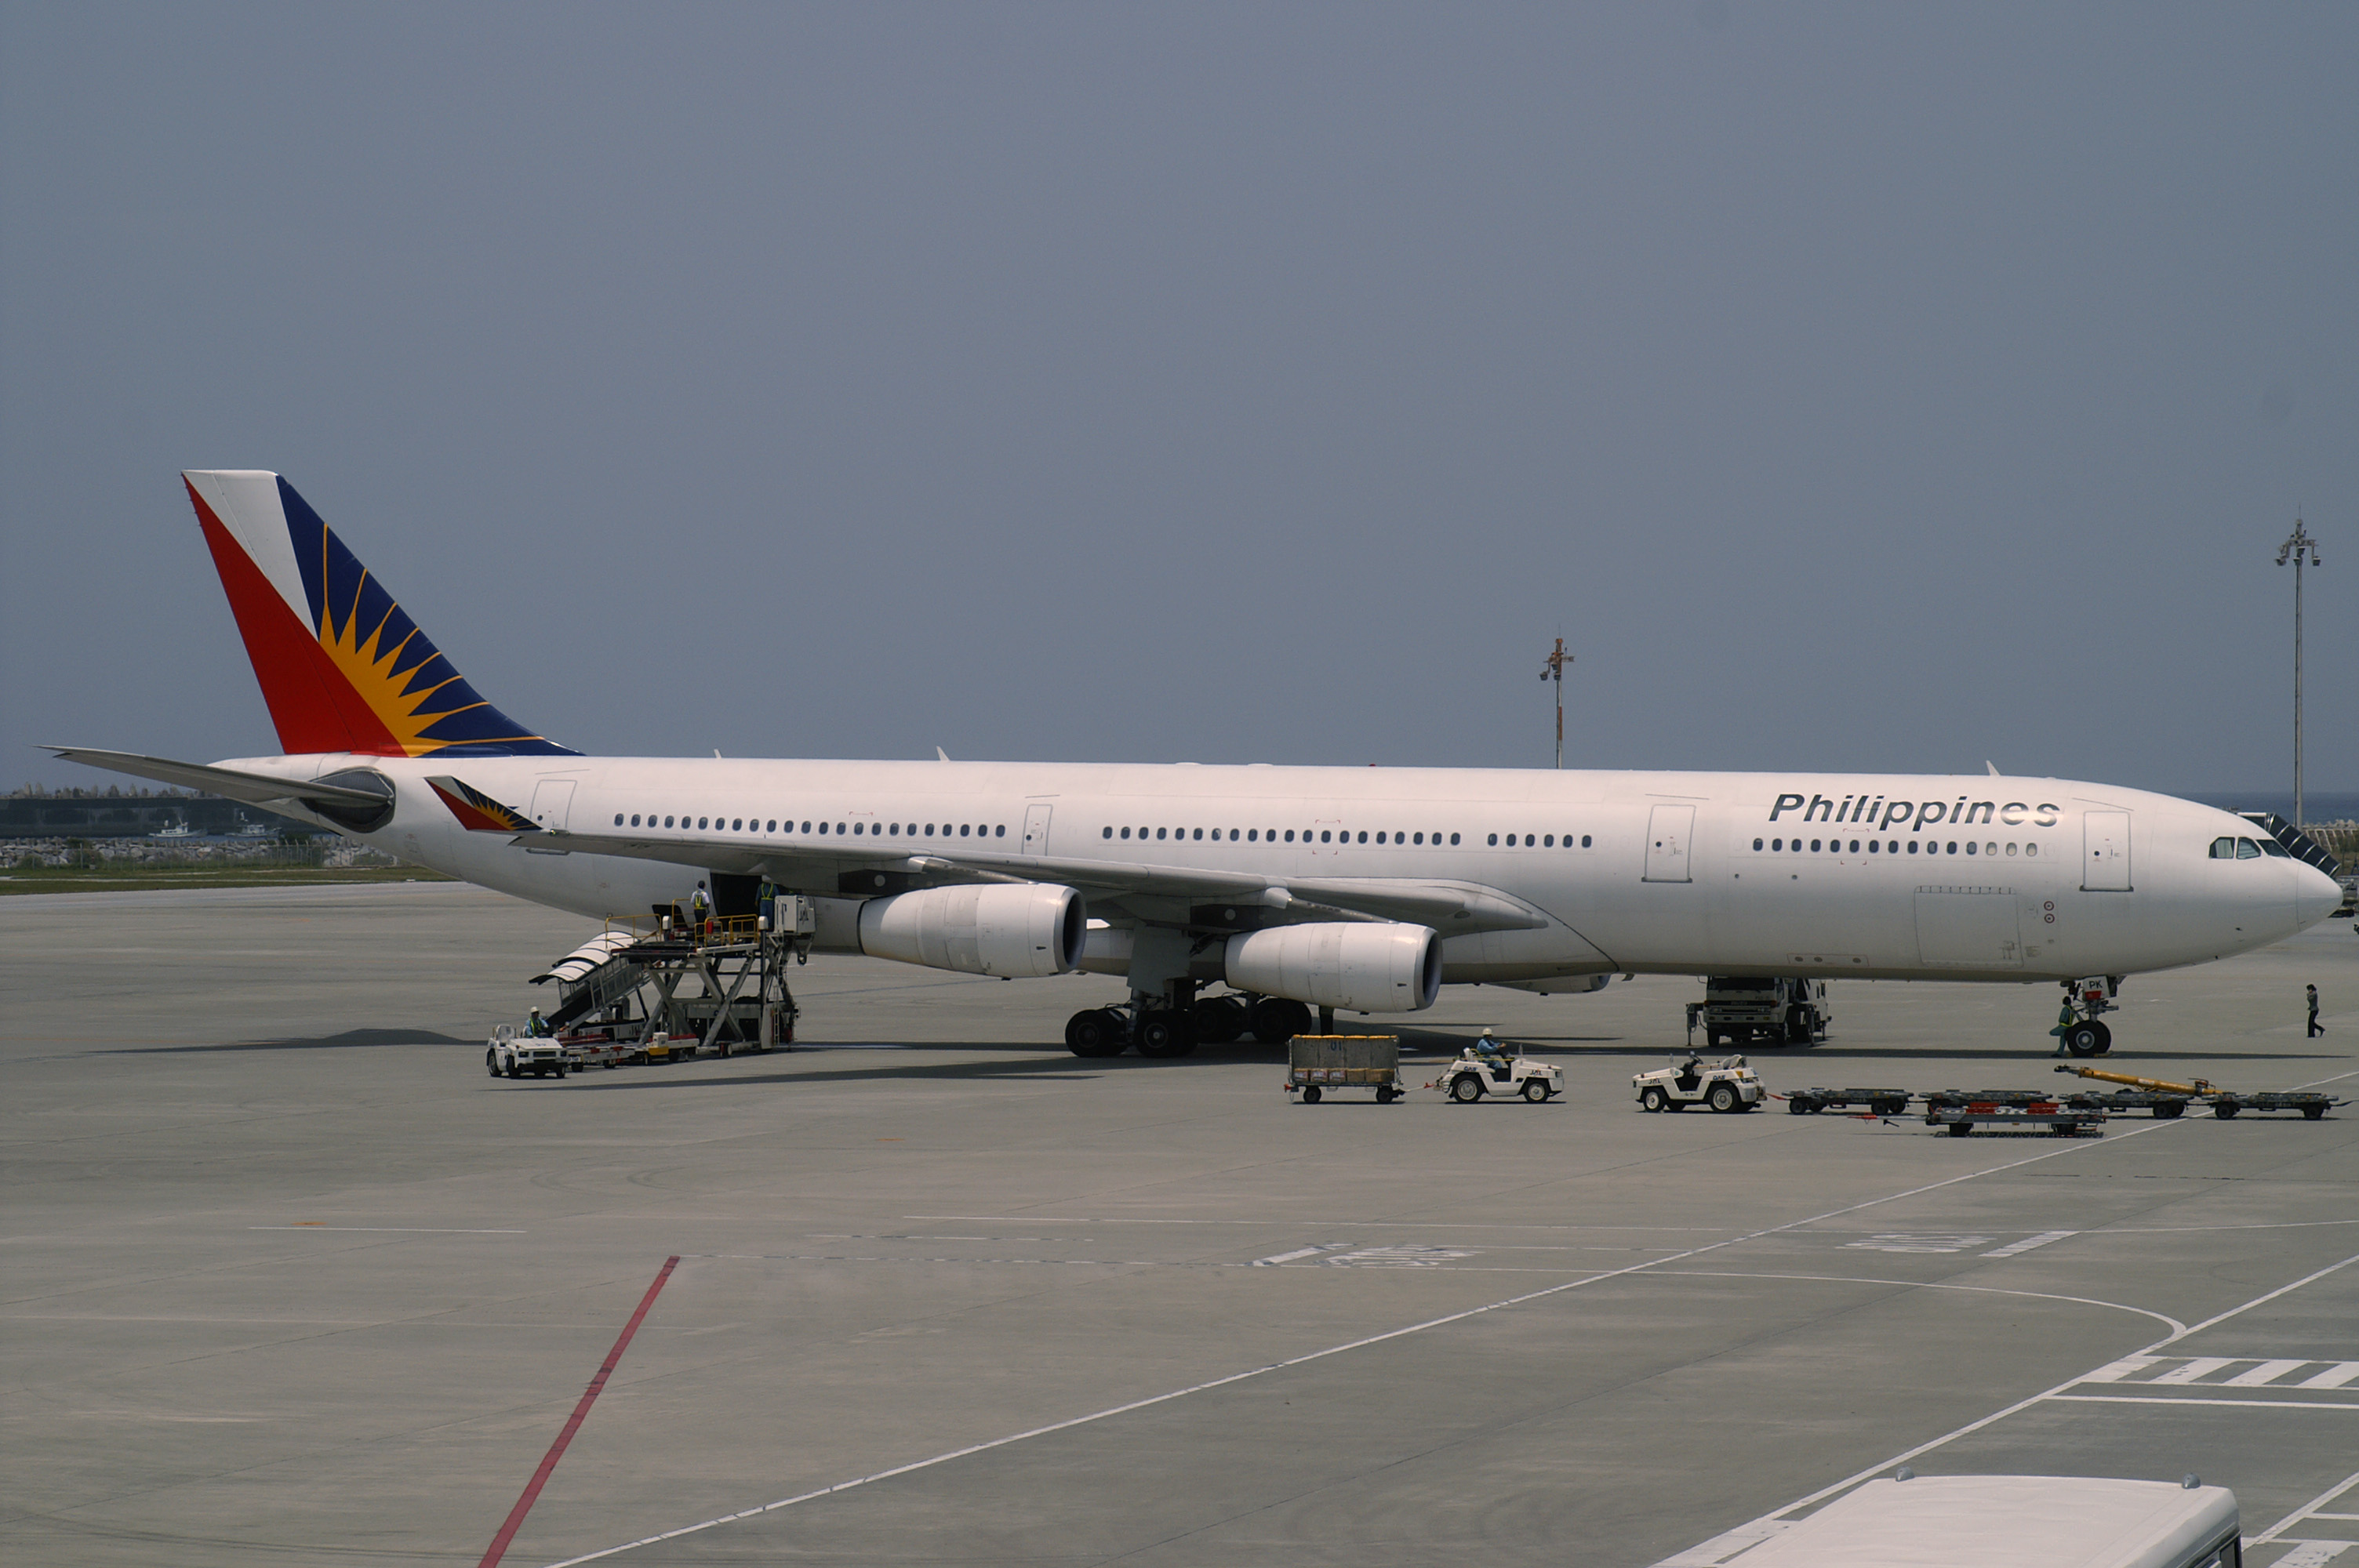 Download this Description Philippine Airlines Airbus Ohpk Naha Airport picture